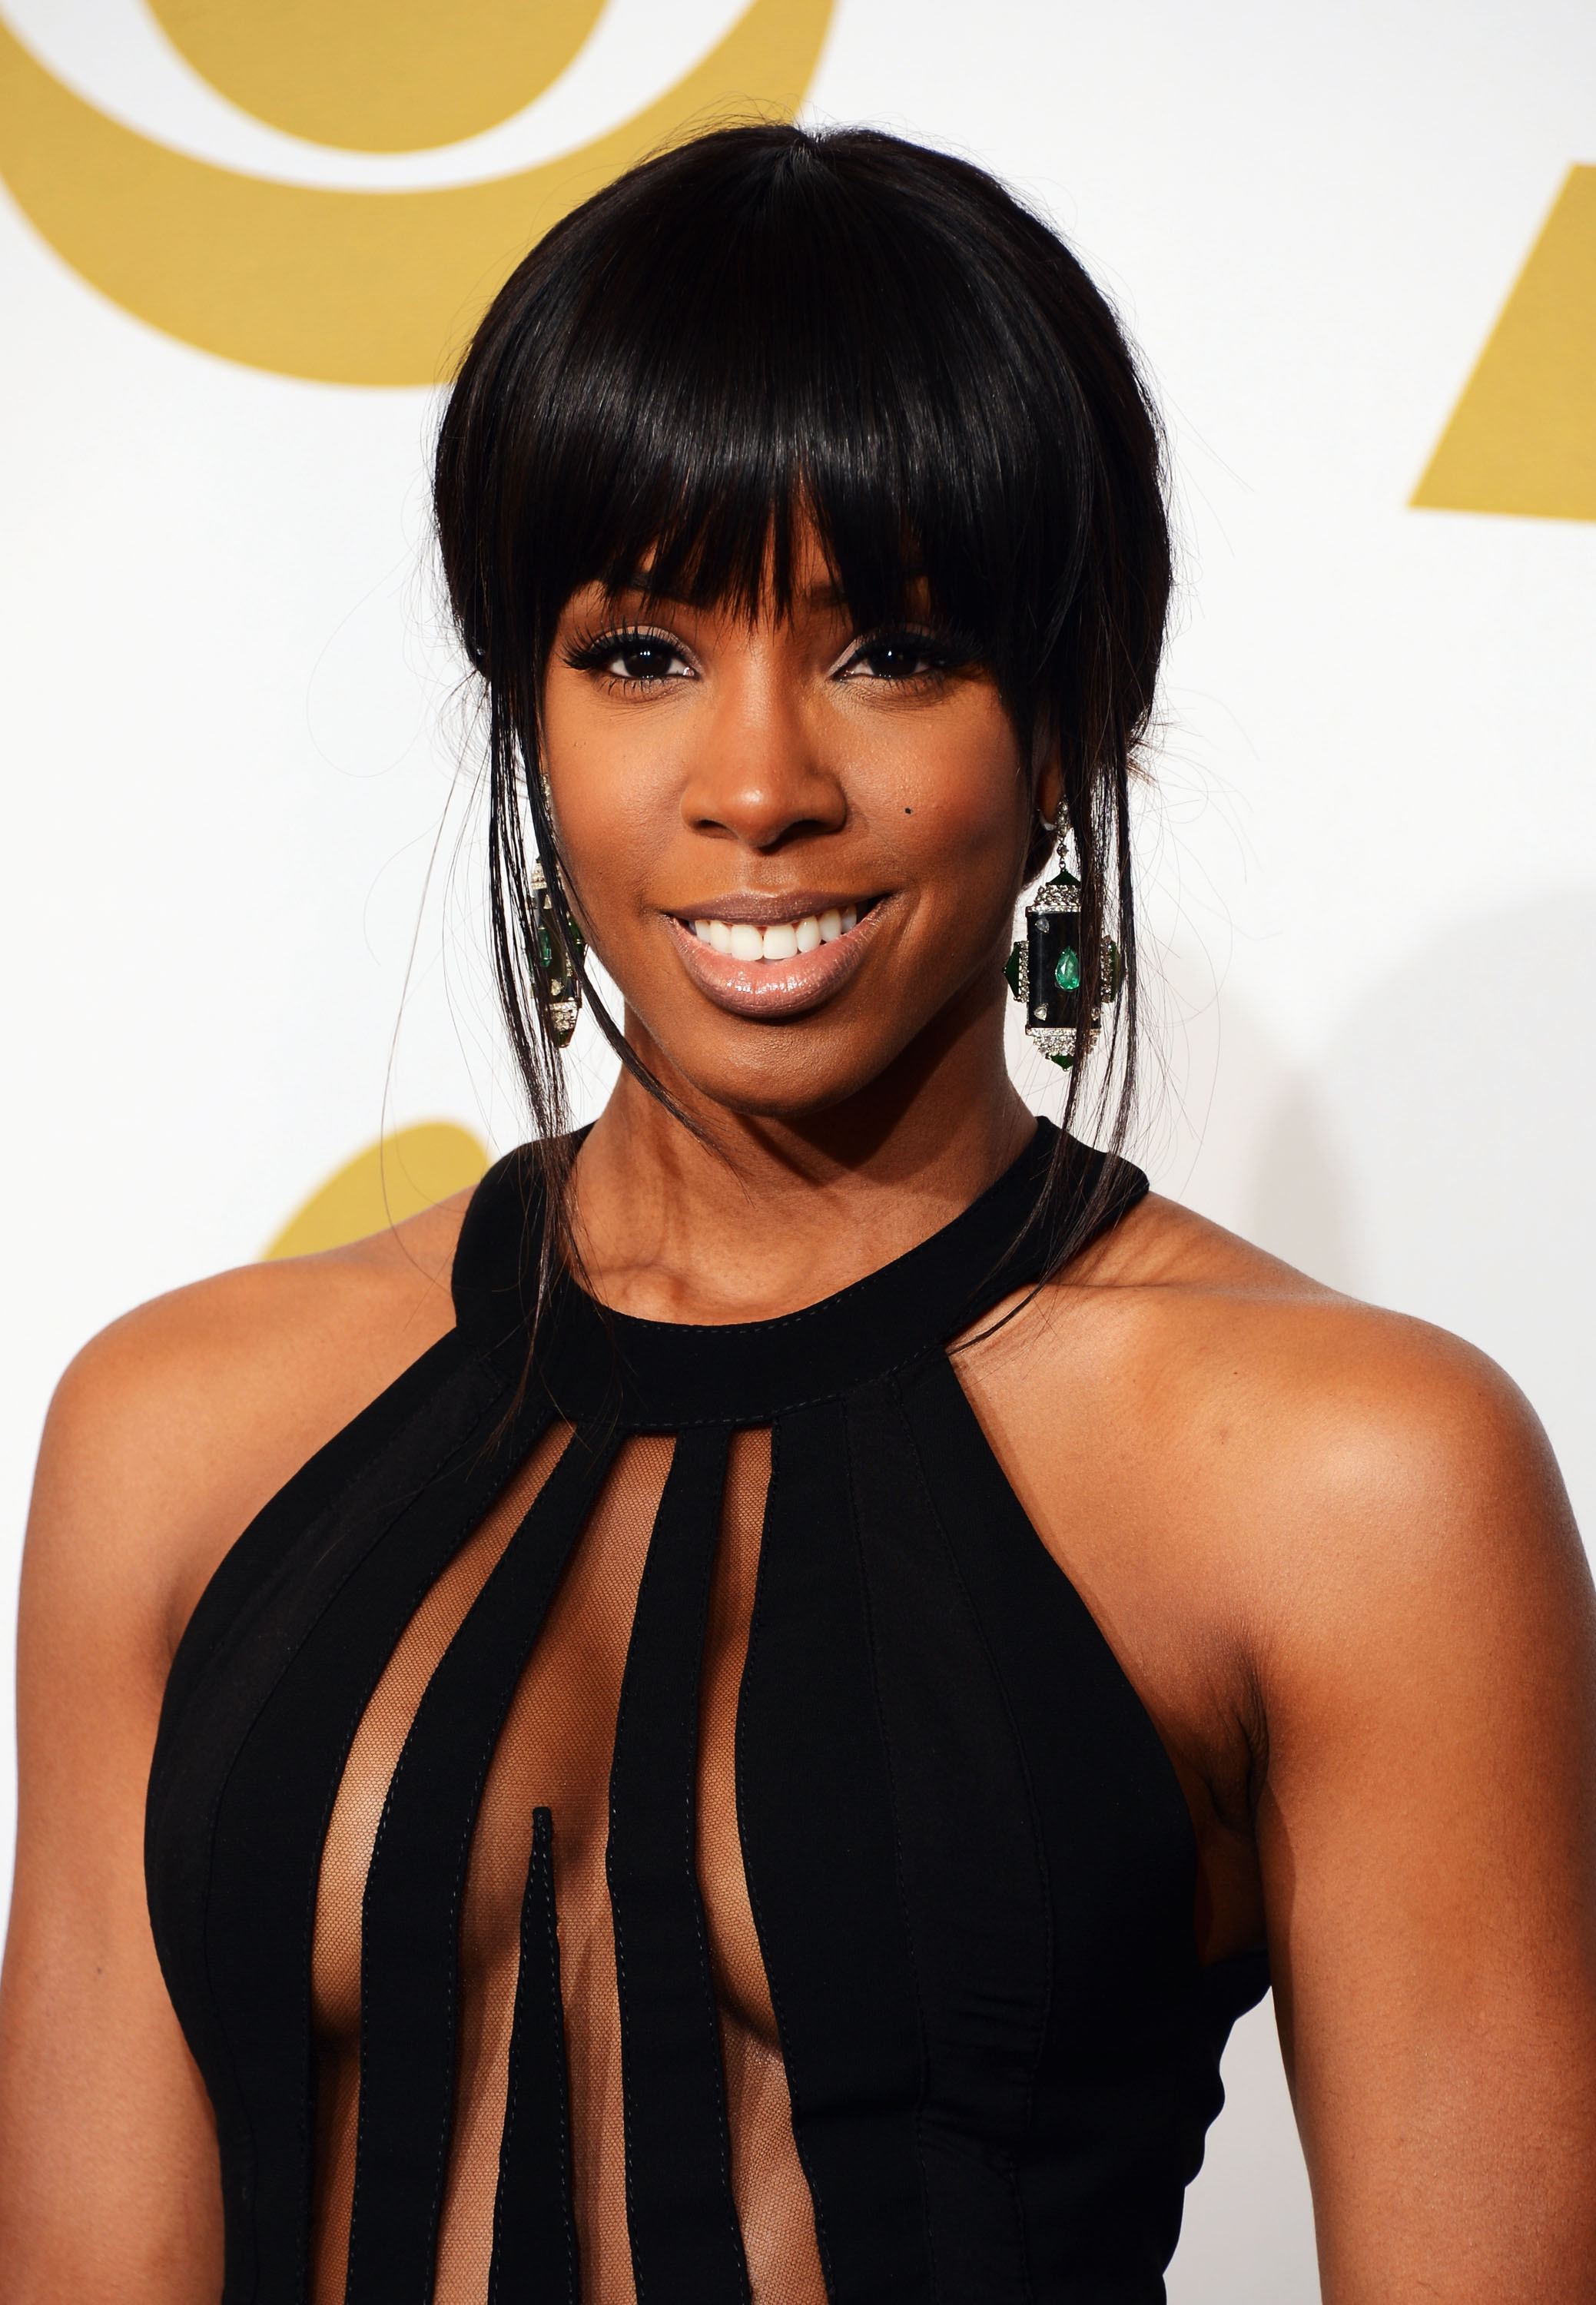 Young Kelly Rowland nudes (78 photo), Tits, Is a cute, Instagram, lingerie 2015